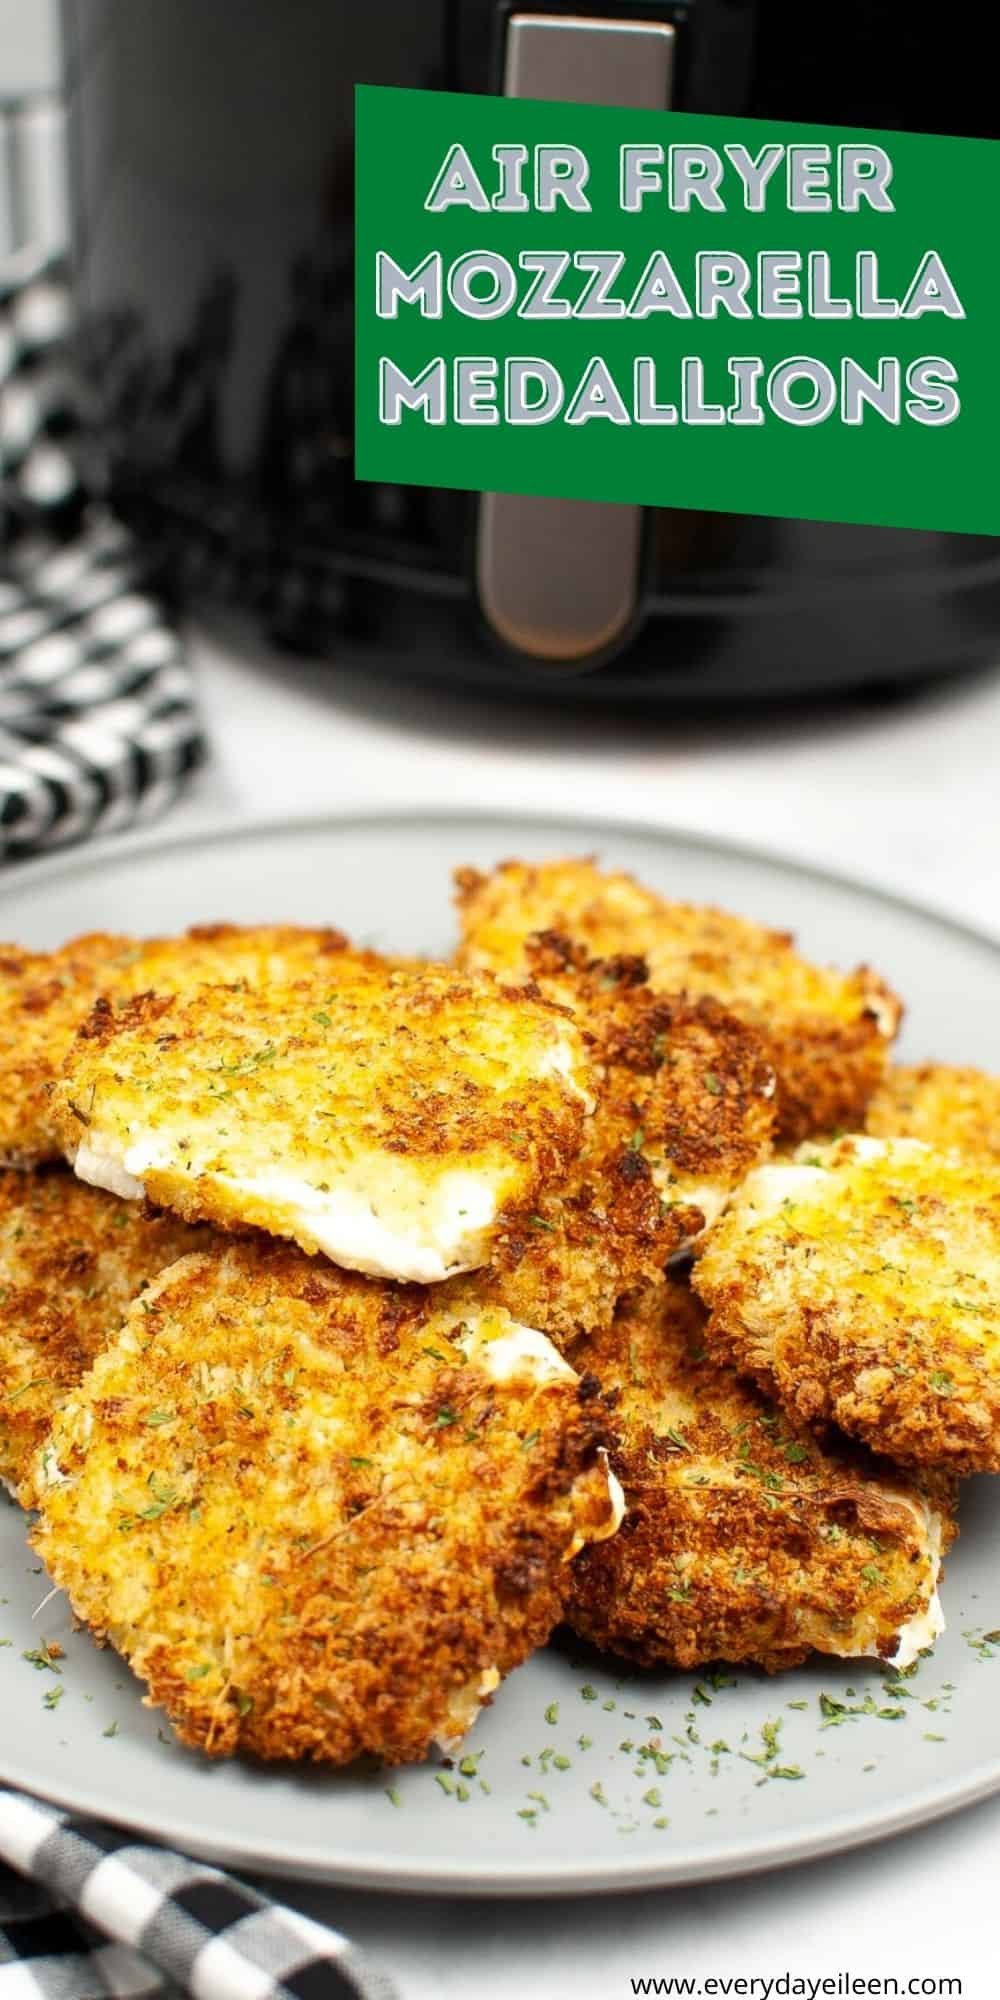 Air Fryer Mozzarella Medallions are delicious treats that have a crispy and crunchy exterior with the cheesy goodness inside. Great for appetizers, snacks, parties, game day. #recipe #airfryermozzarellamedallions #gamedaysnacks #mozzarellasticks #everydayeileen via @/everydayeileen/